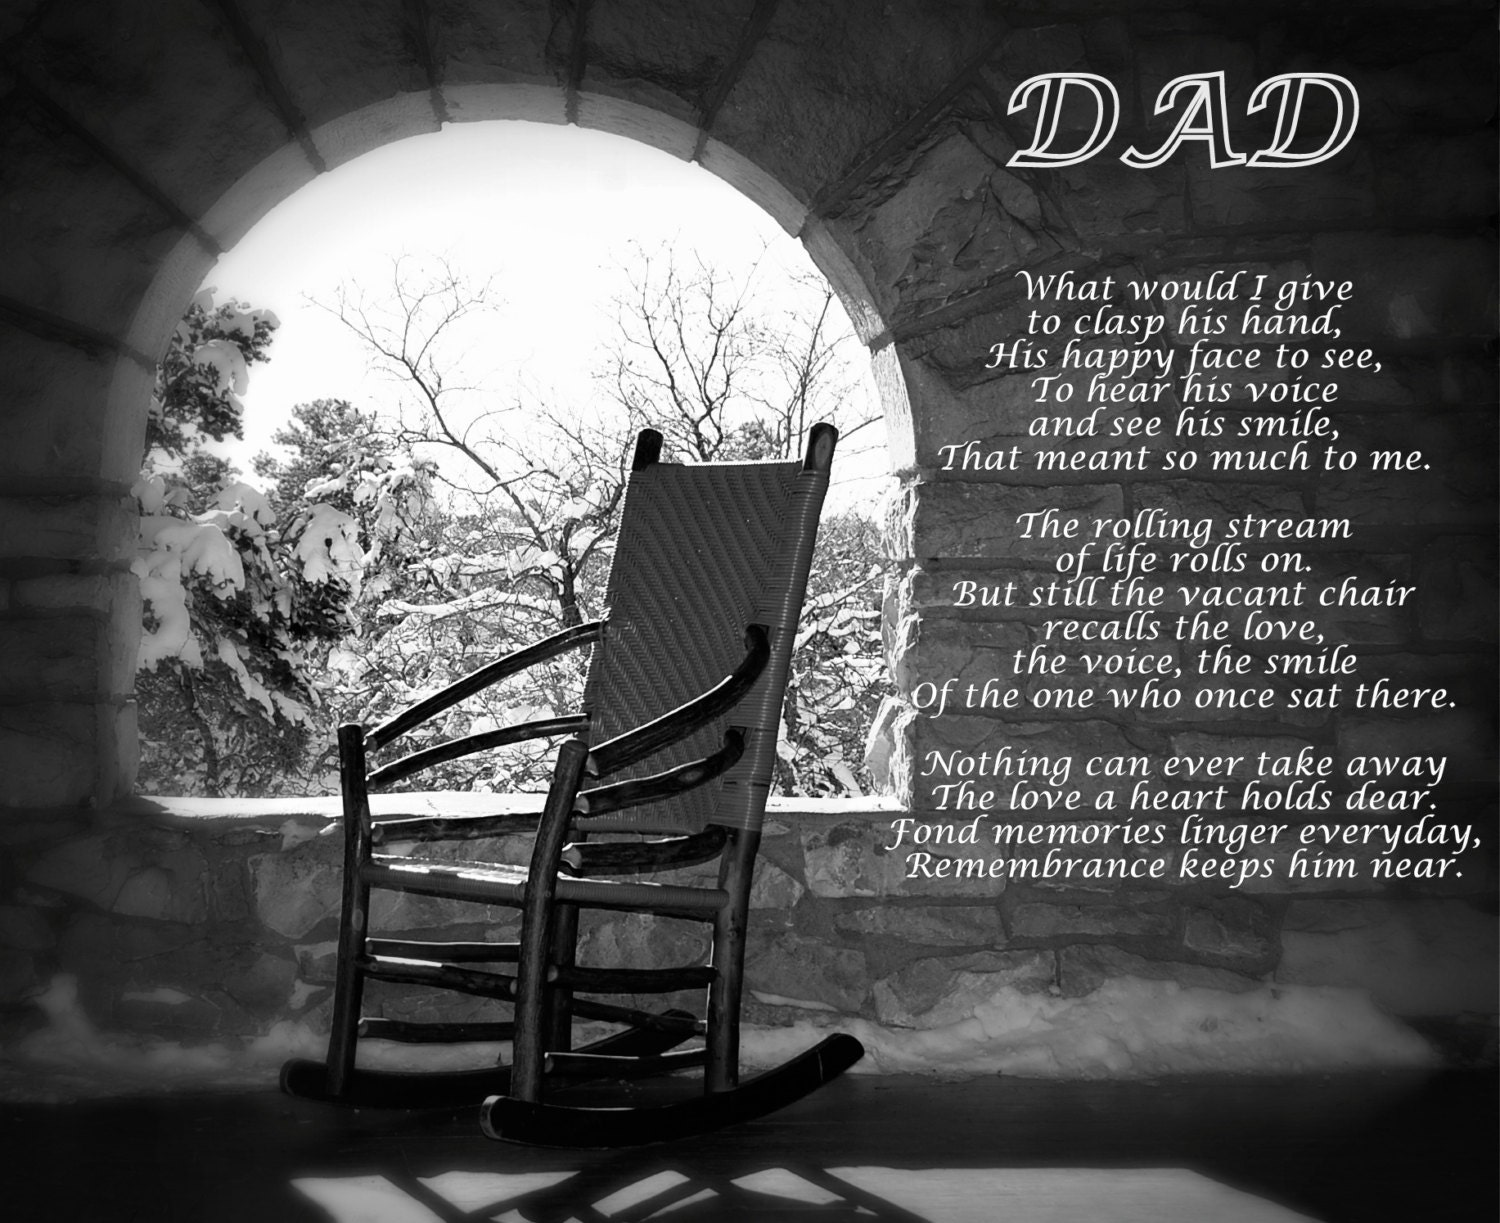 Black and white chair photography - Missing Dad Poem Dad S Empty Chair Remembering Dad Poem For Dad Empty Chair Poem In Remembrance Love Dad Memories